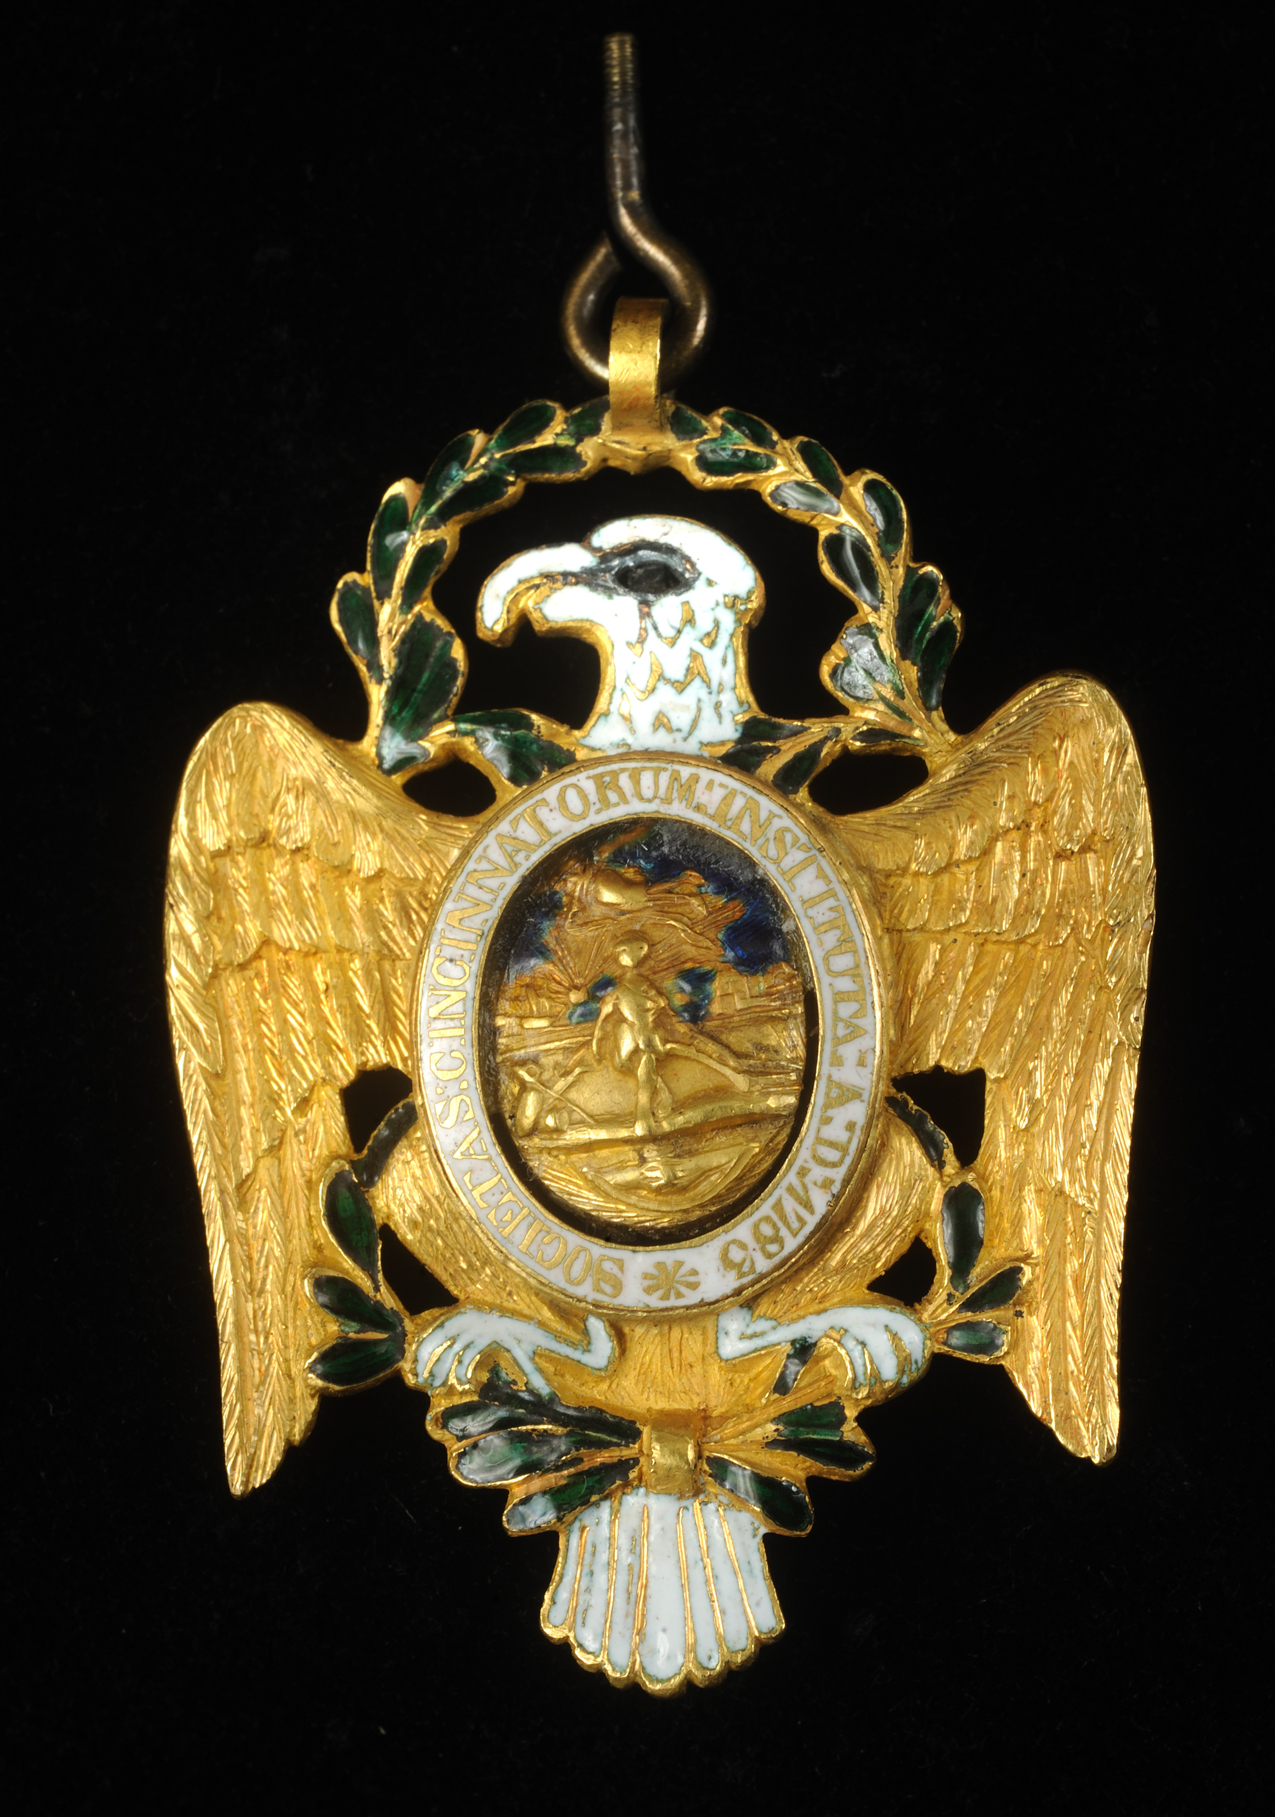 Anderson Society of the Cincinnati insignia, ca. 1790